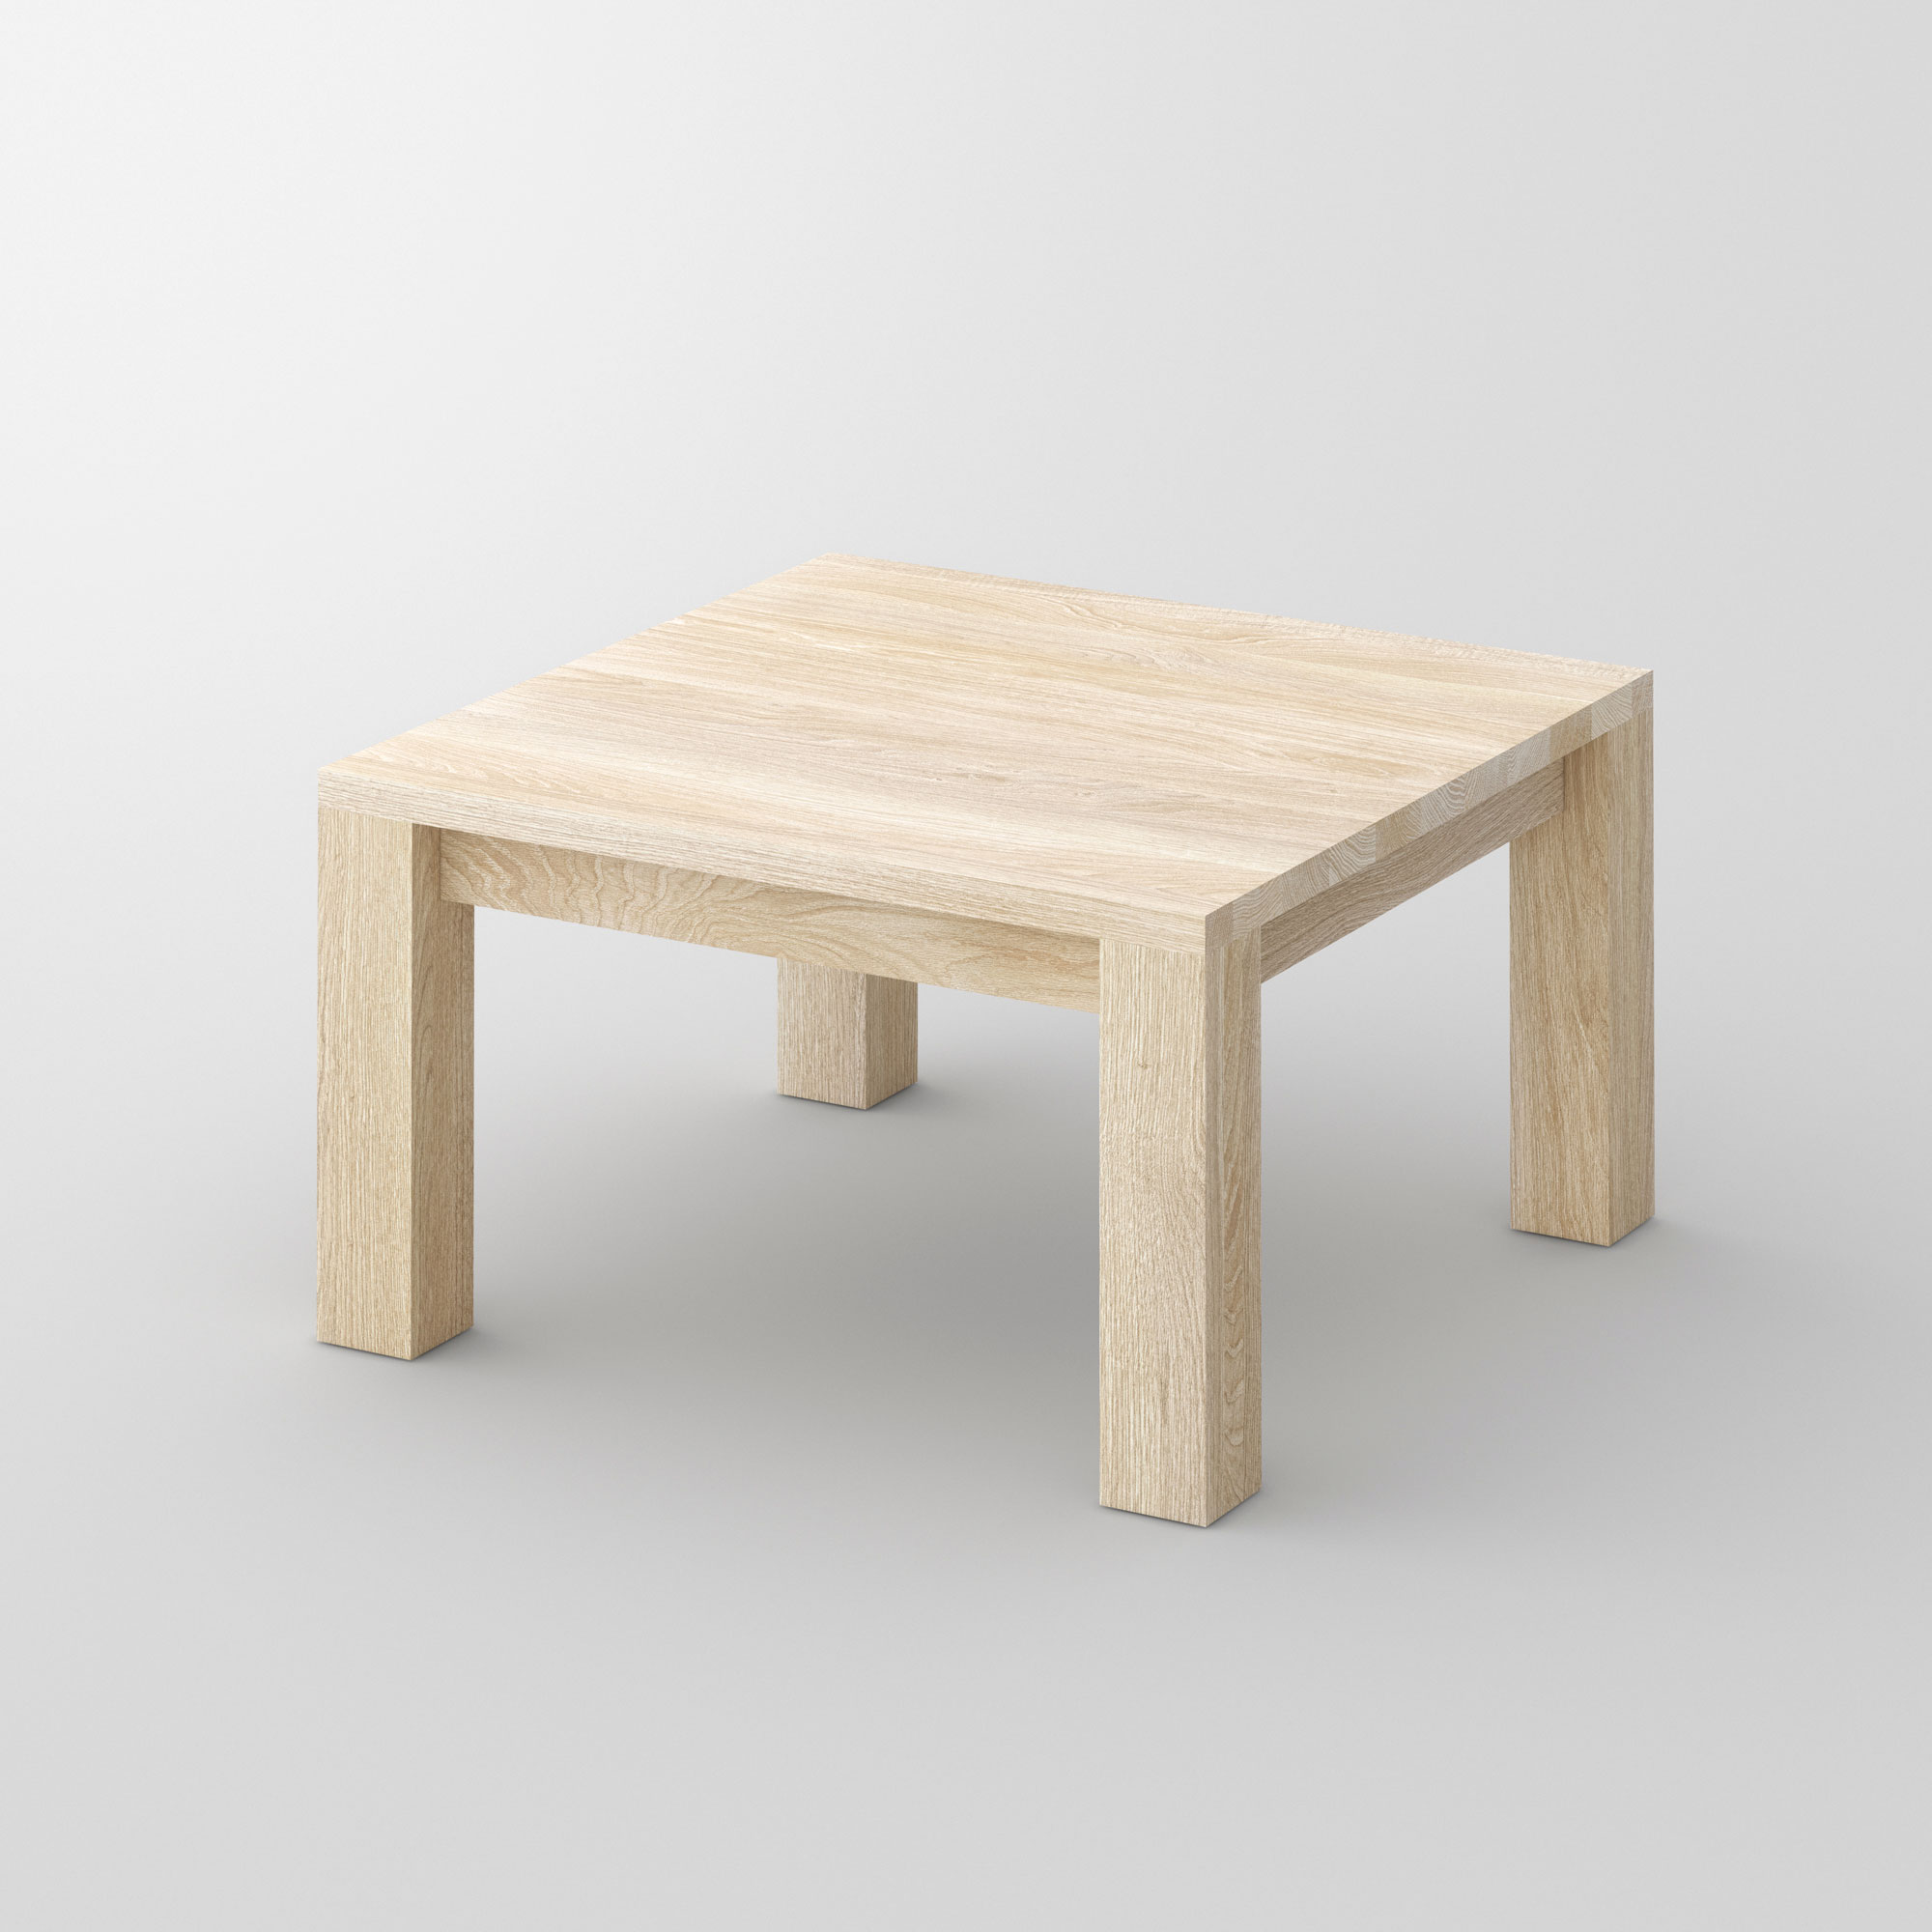 Coffee Table in Oak CUBUS cam1 custom made in solid wood by vitamin design